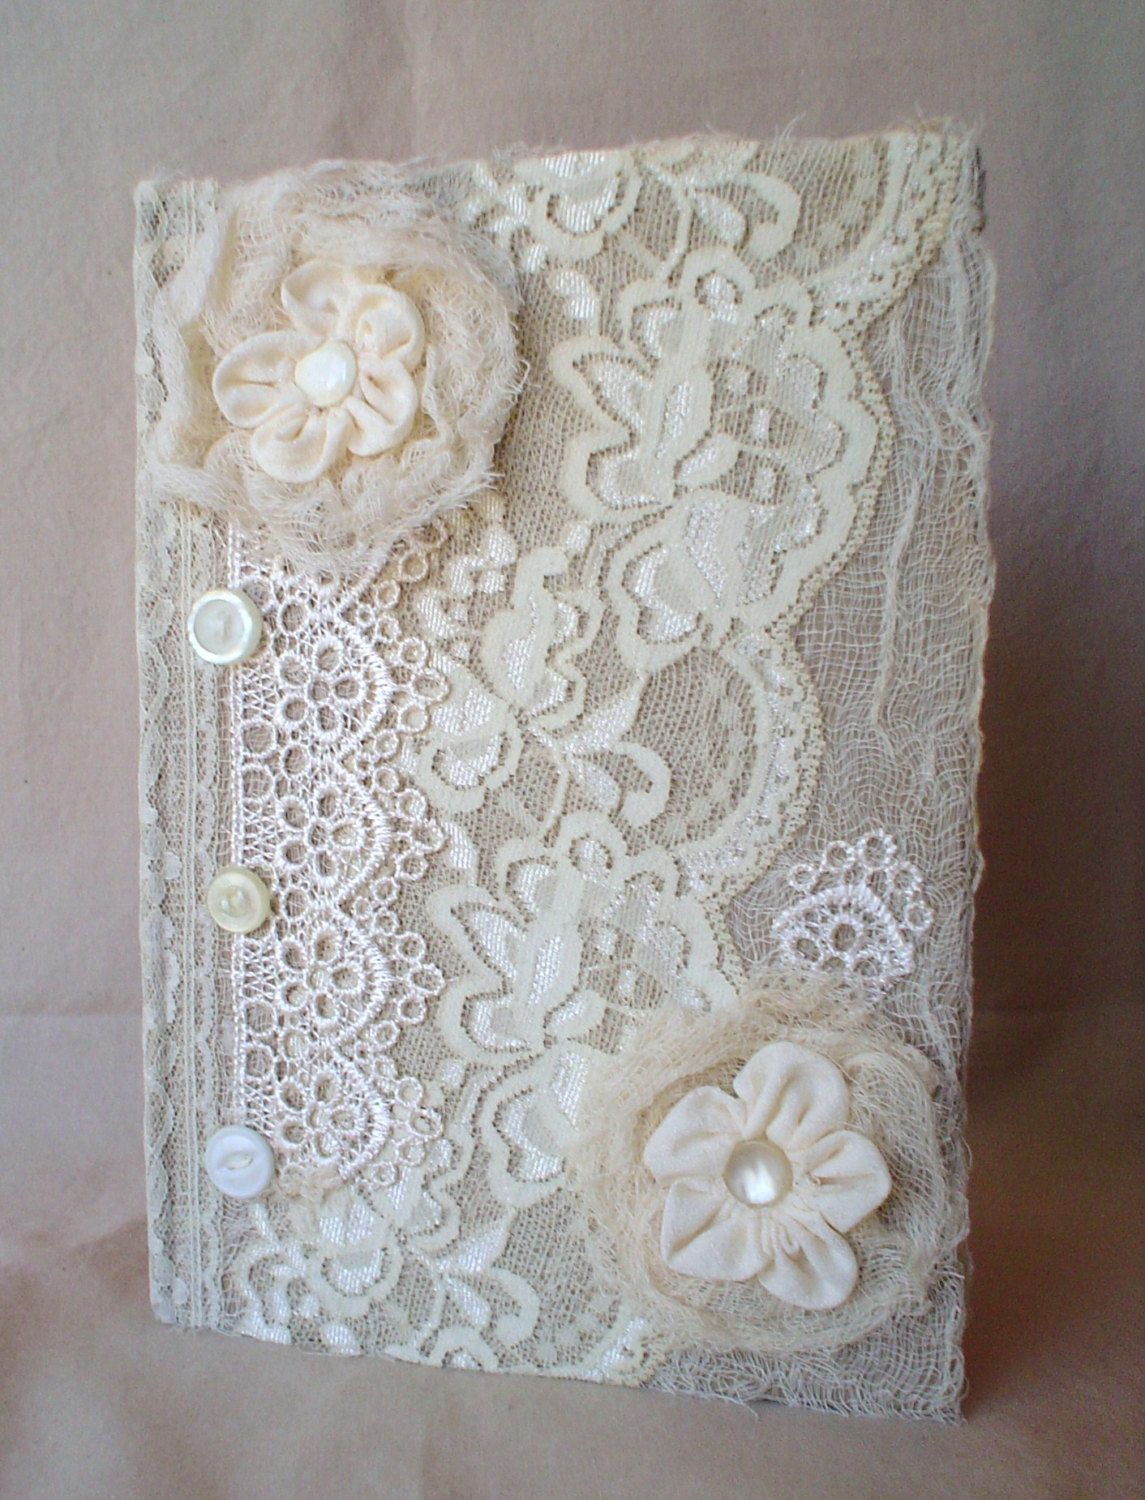 Lace Journal Diary Notebook Handmade Ribbon Flowers Vintage Button Fabric Fabric Book Covers Fabric Book Handmade Journals